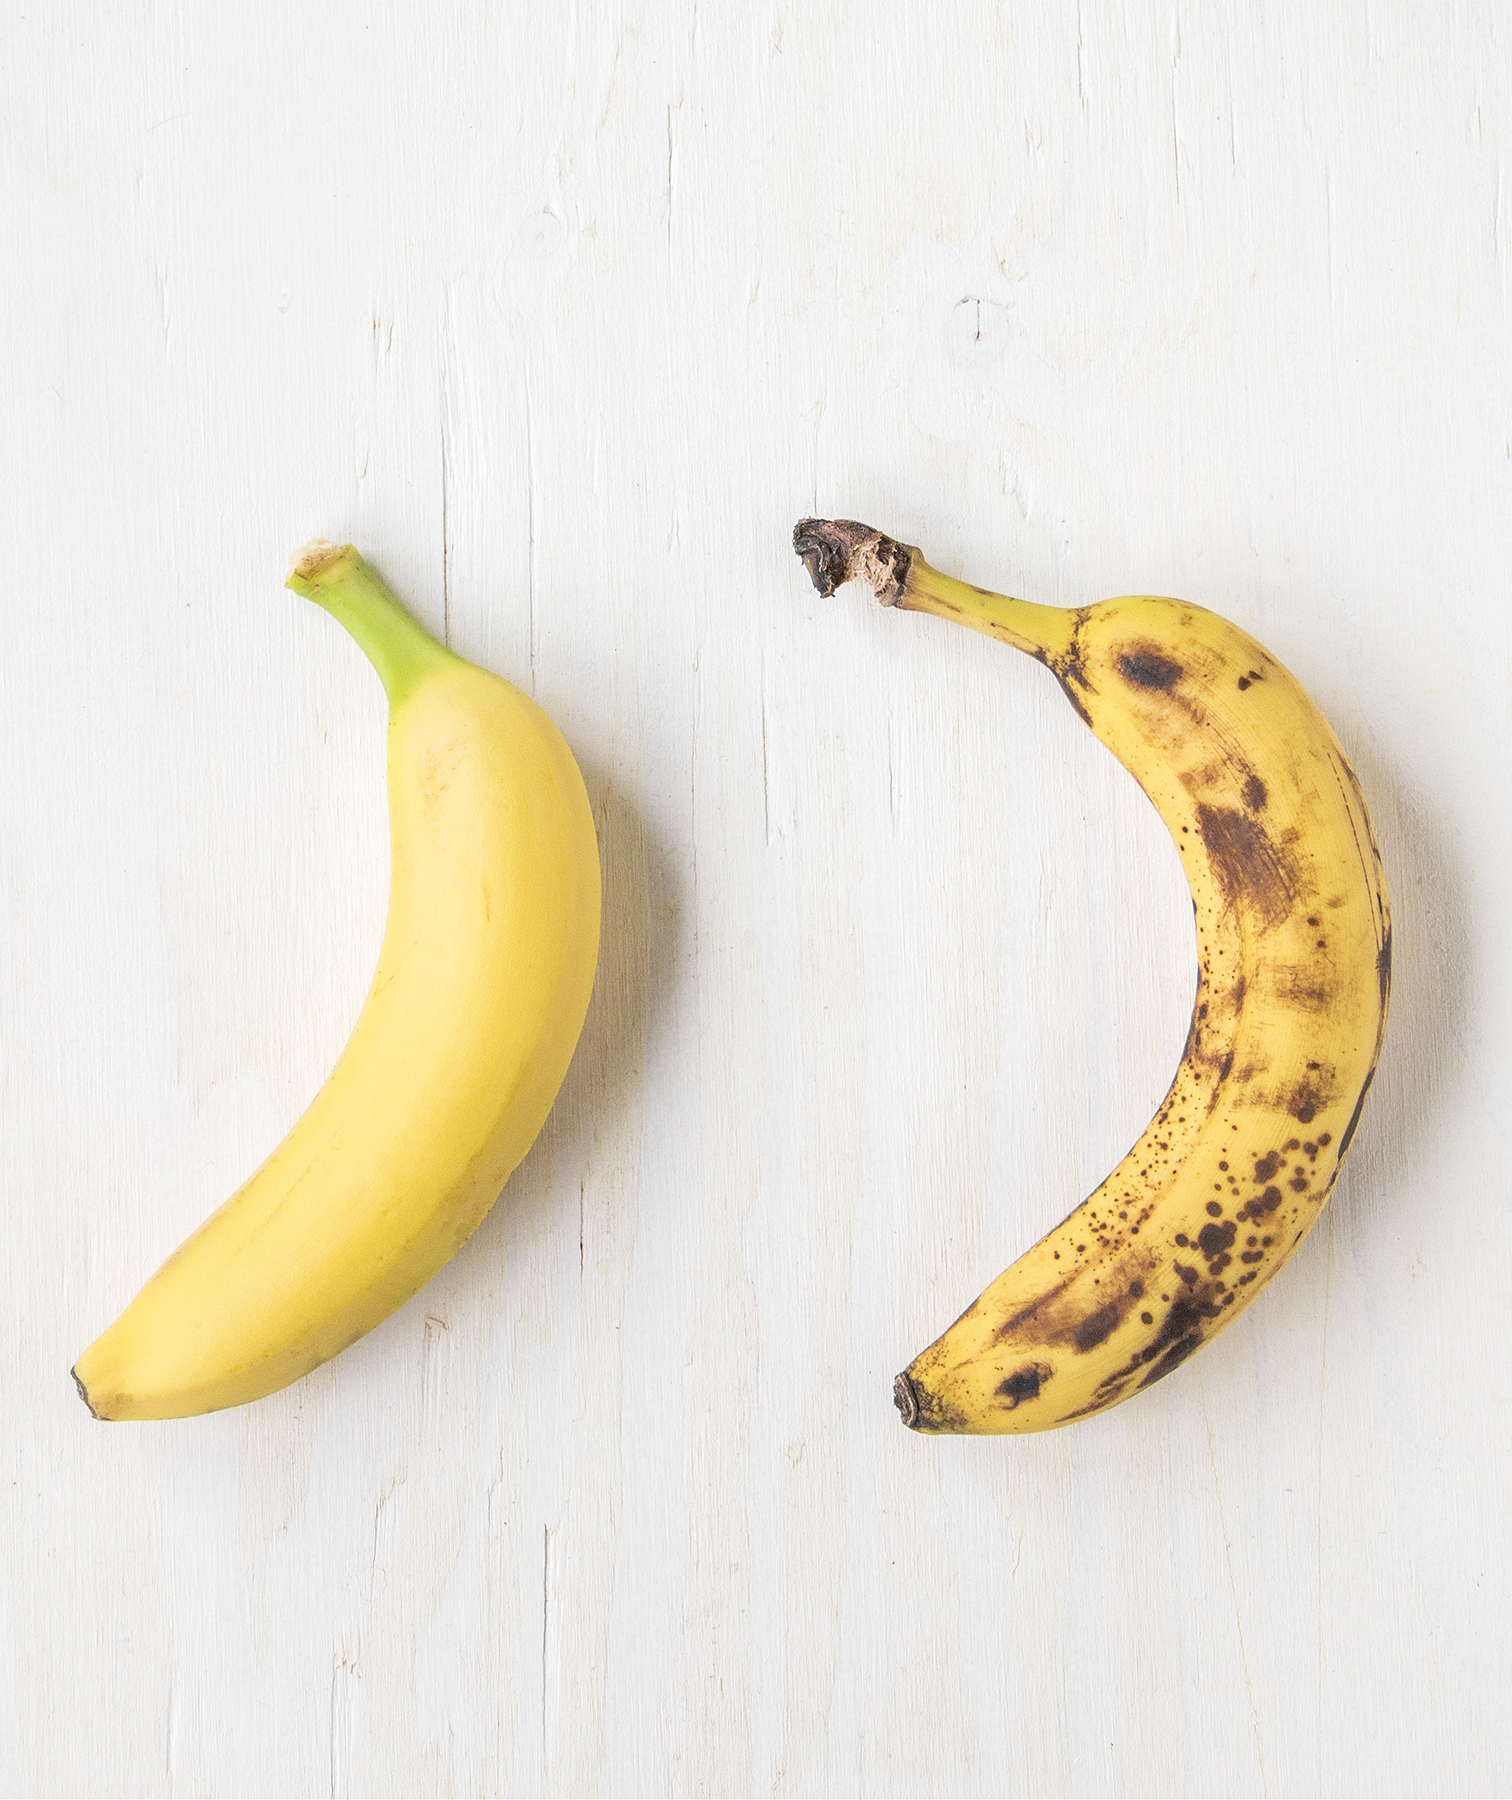 bananas-stages-ripeness